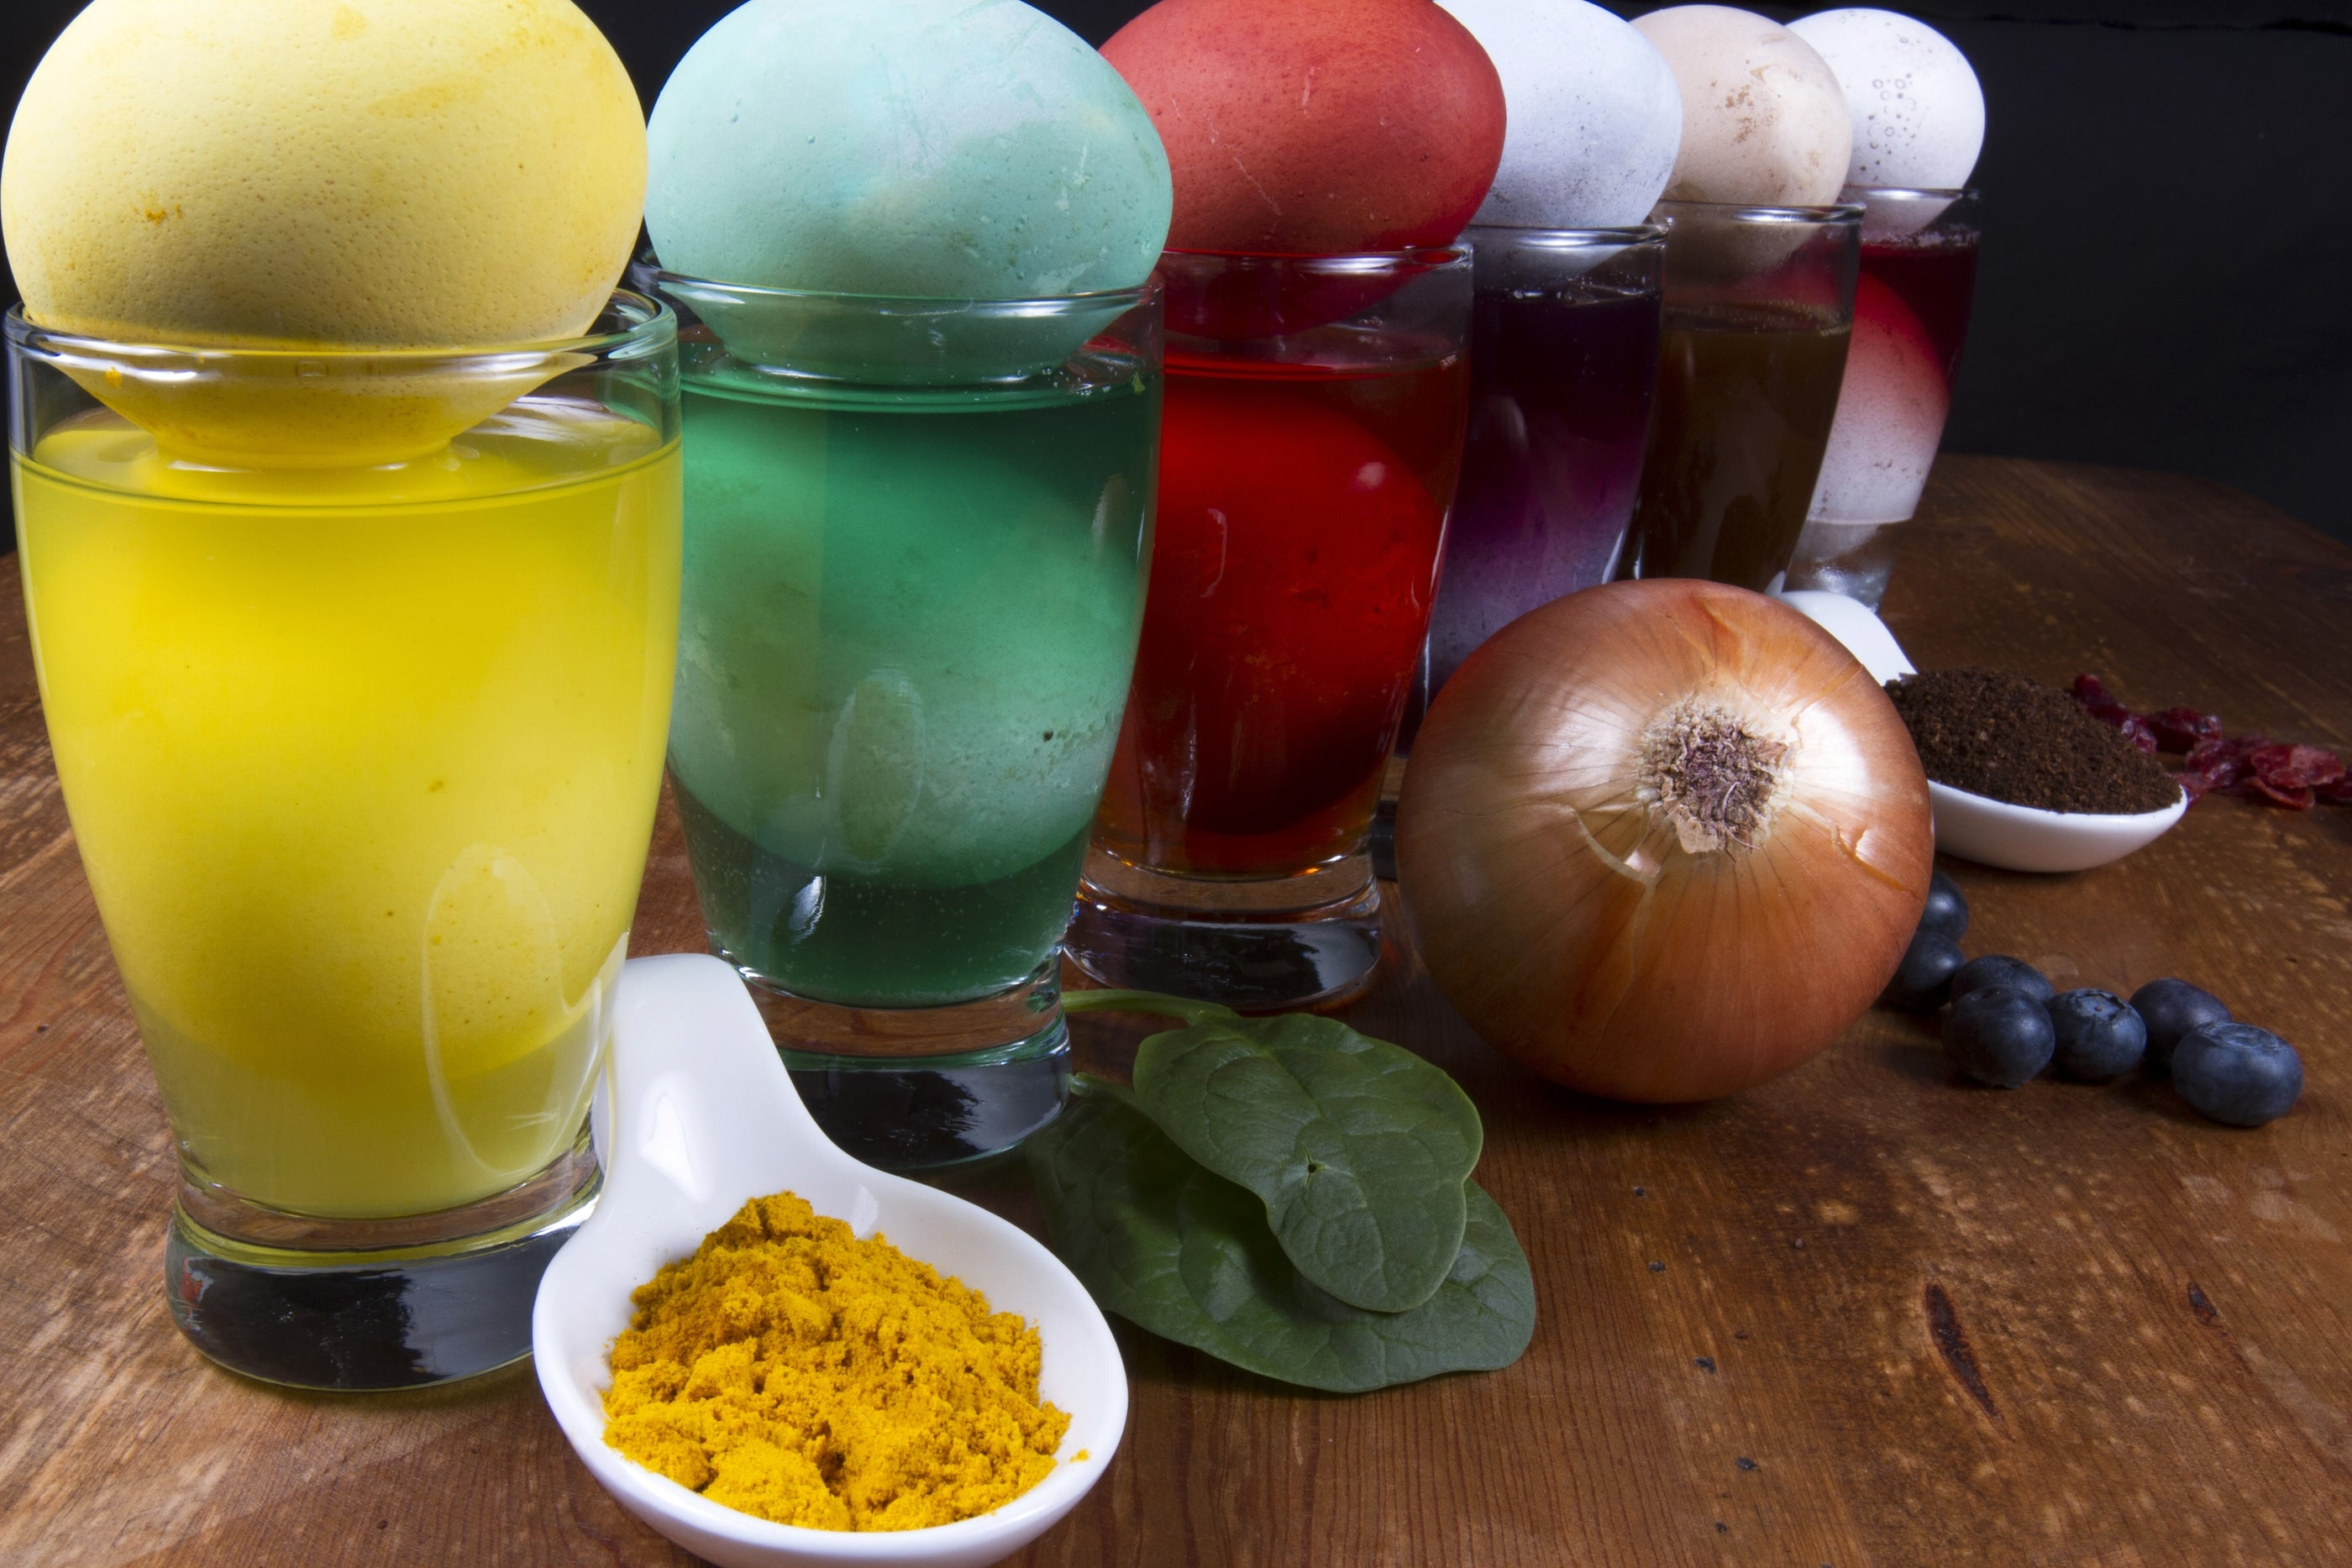 Easter egg dyes made from natural ingredients to produce multi-colored results